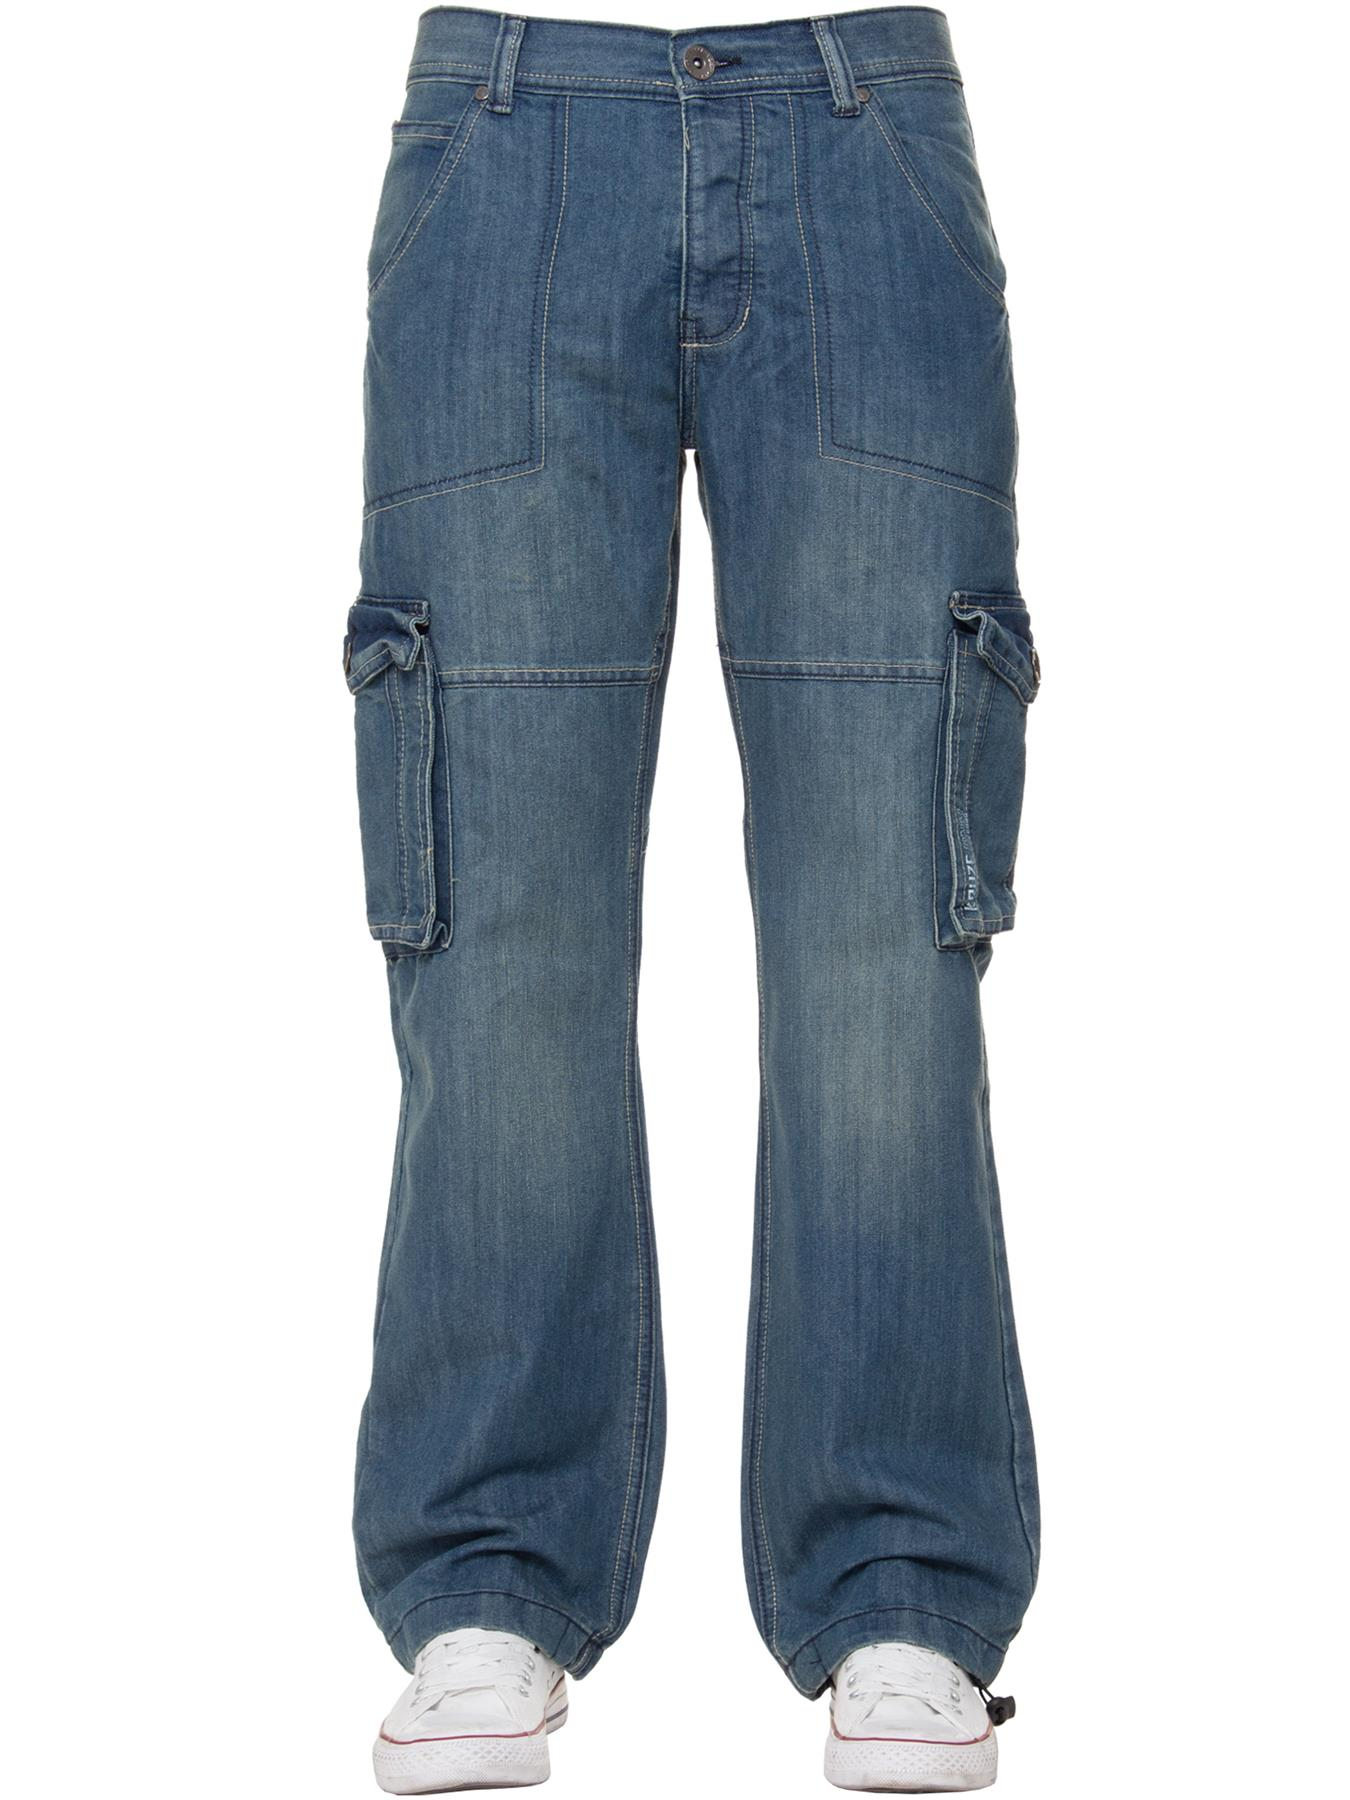 Kruze-Mens-Cargo-Combat-Jeans-Casual-Work-Denim-Pants-Big-Tall-All-Waist-Sizes thumbnail 13